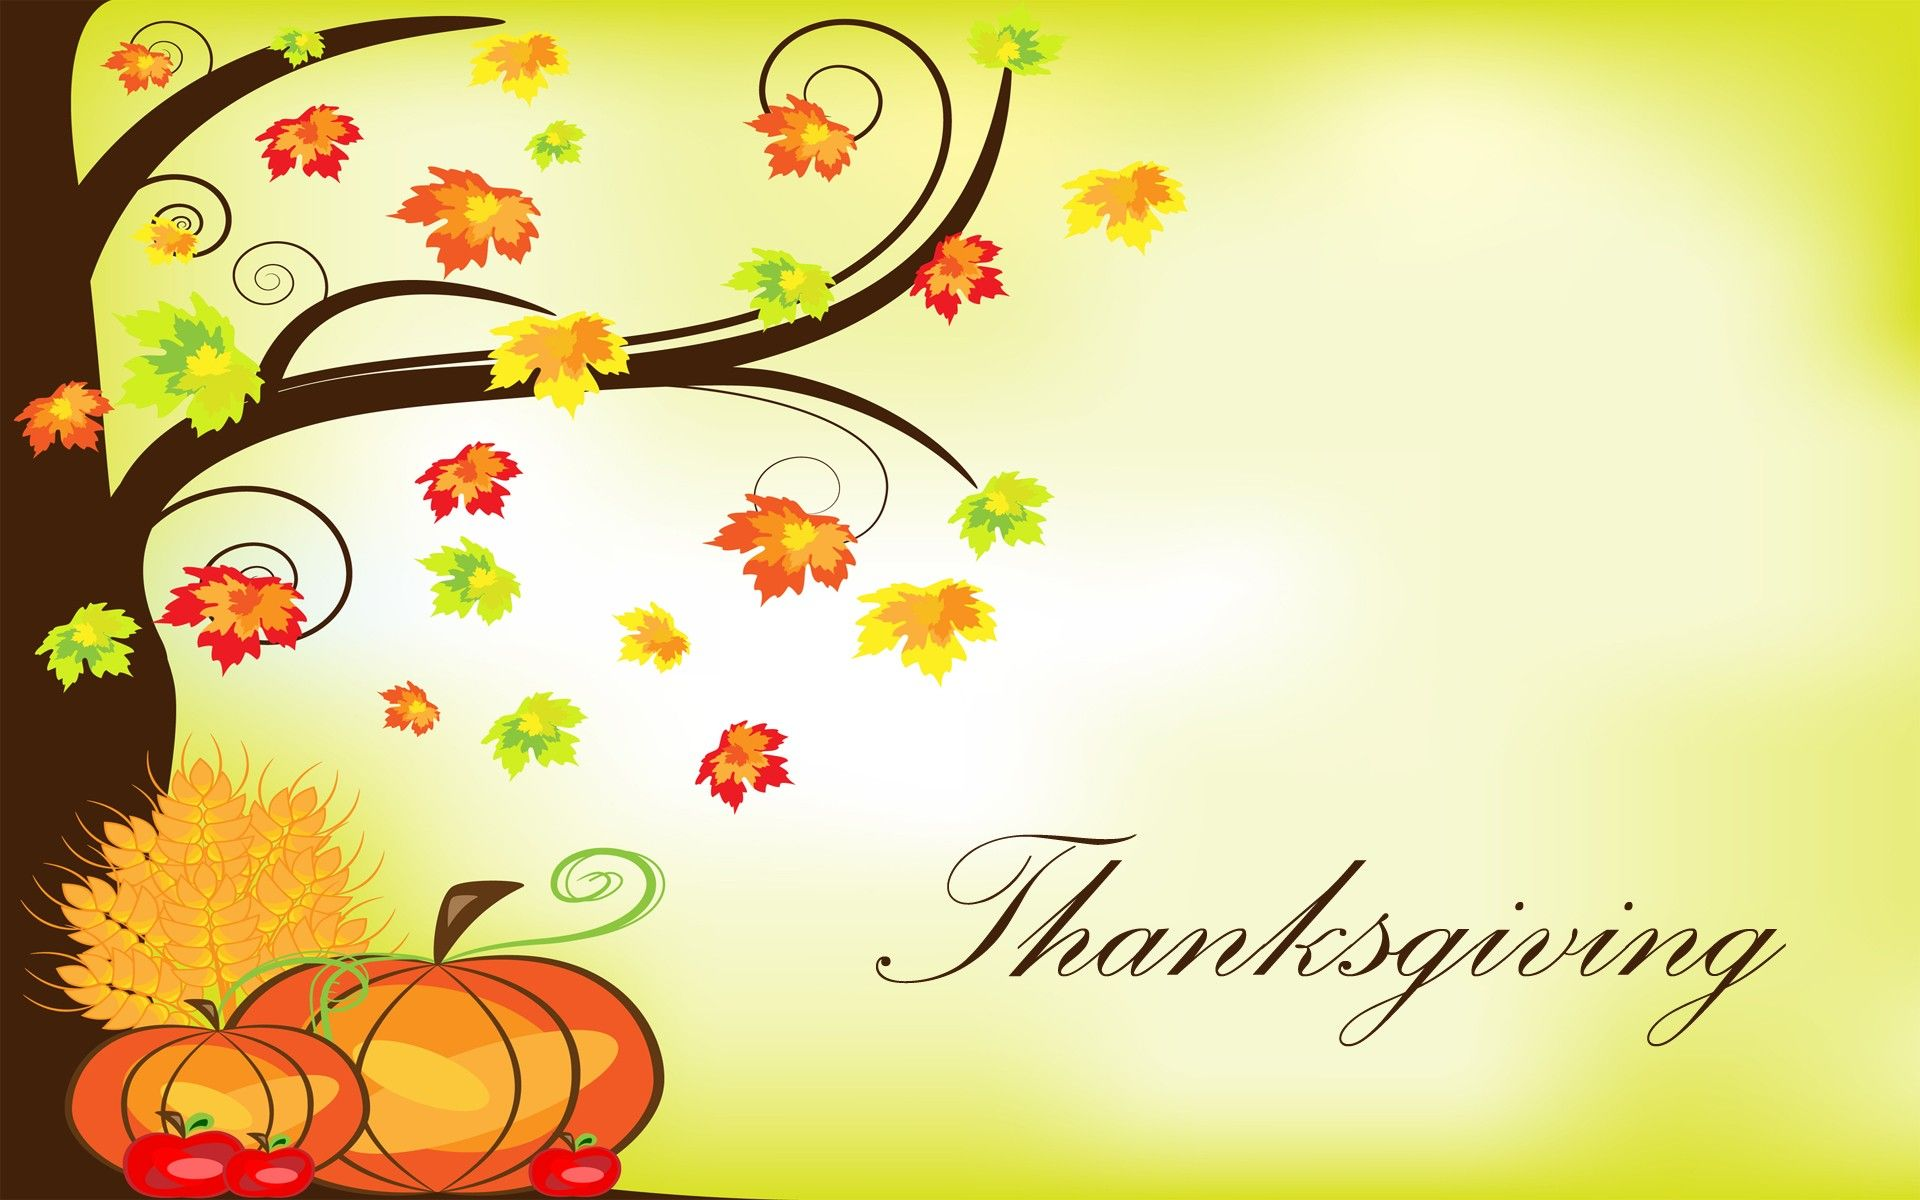 Pretty thanksgiving pictures home greetings and wishes happy pretty thanksgiving pictures home greetings and wishes happy thanksgiving day m4hsunfo